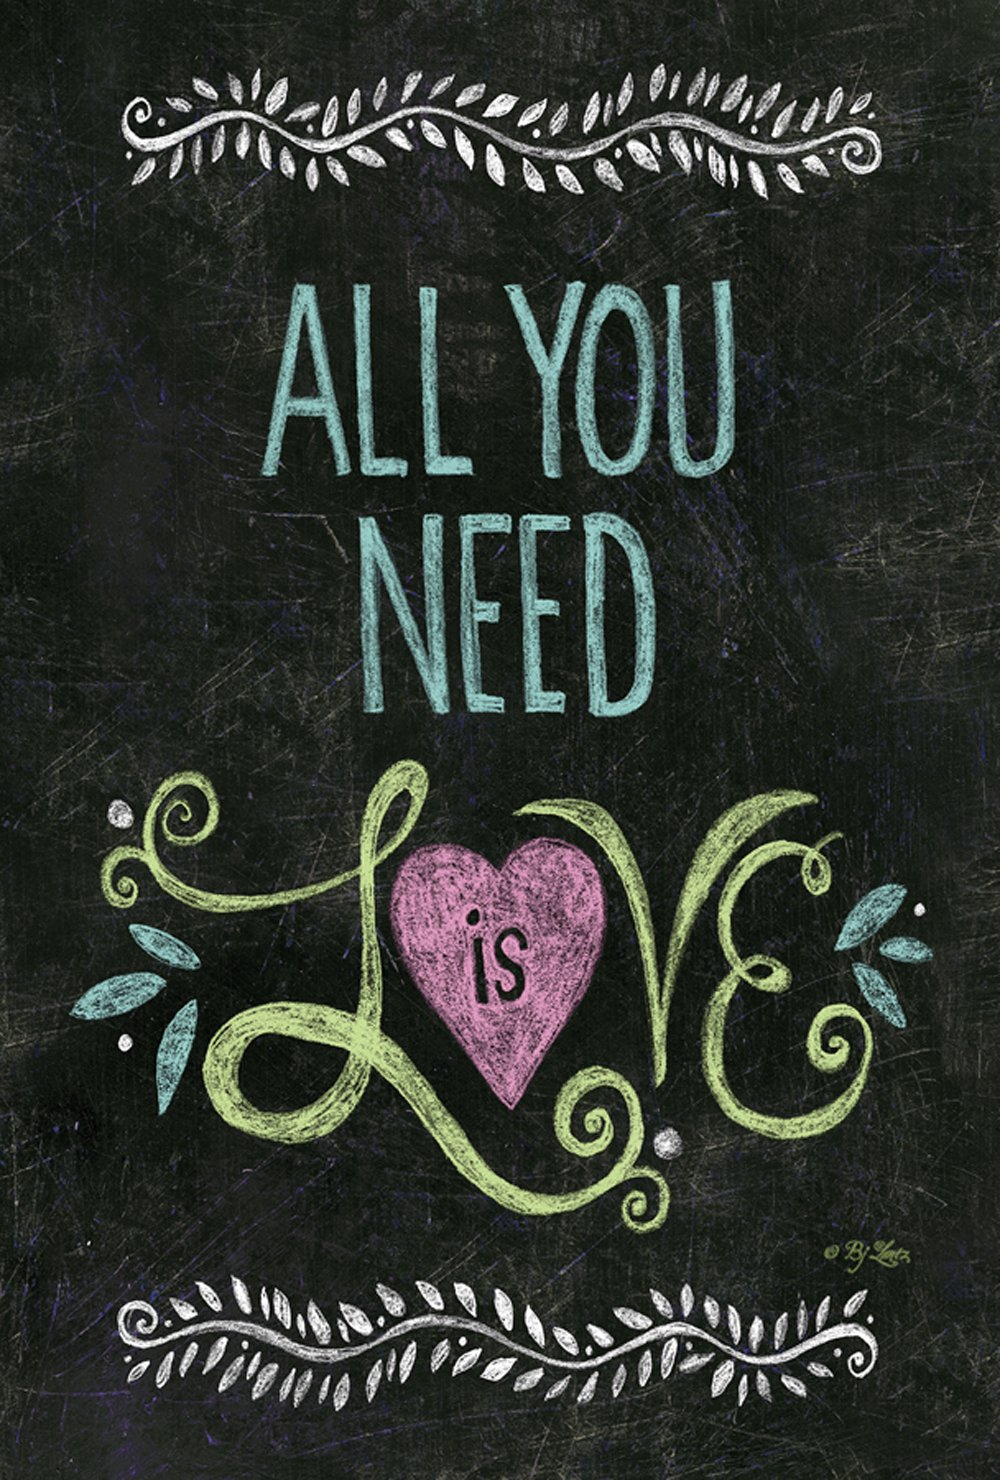 Toland Home Garden All You Need Is Love Chalkboard 12.5 x 18 Inch Decorative Inspirational Double Sided Garden Flag